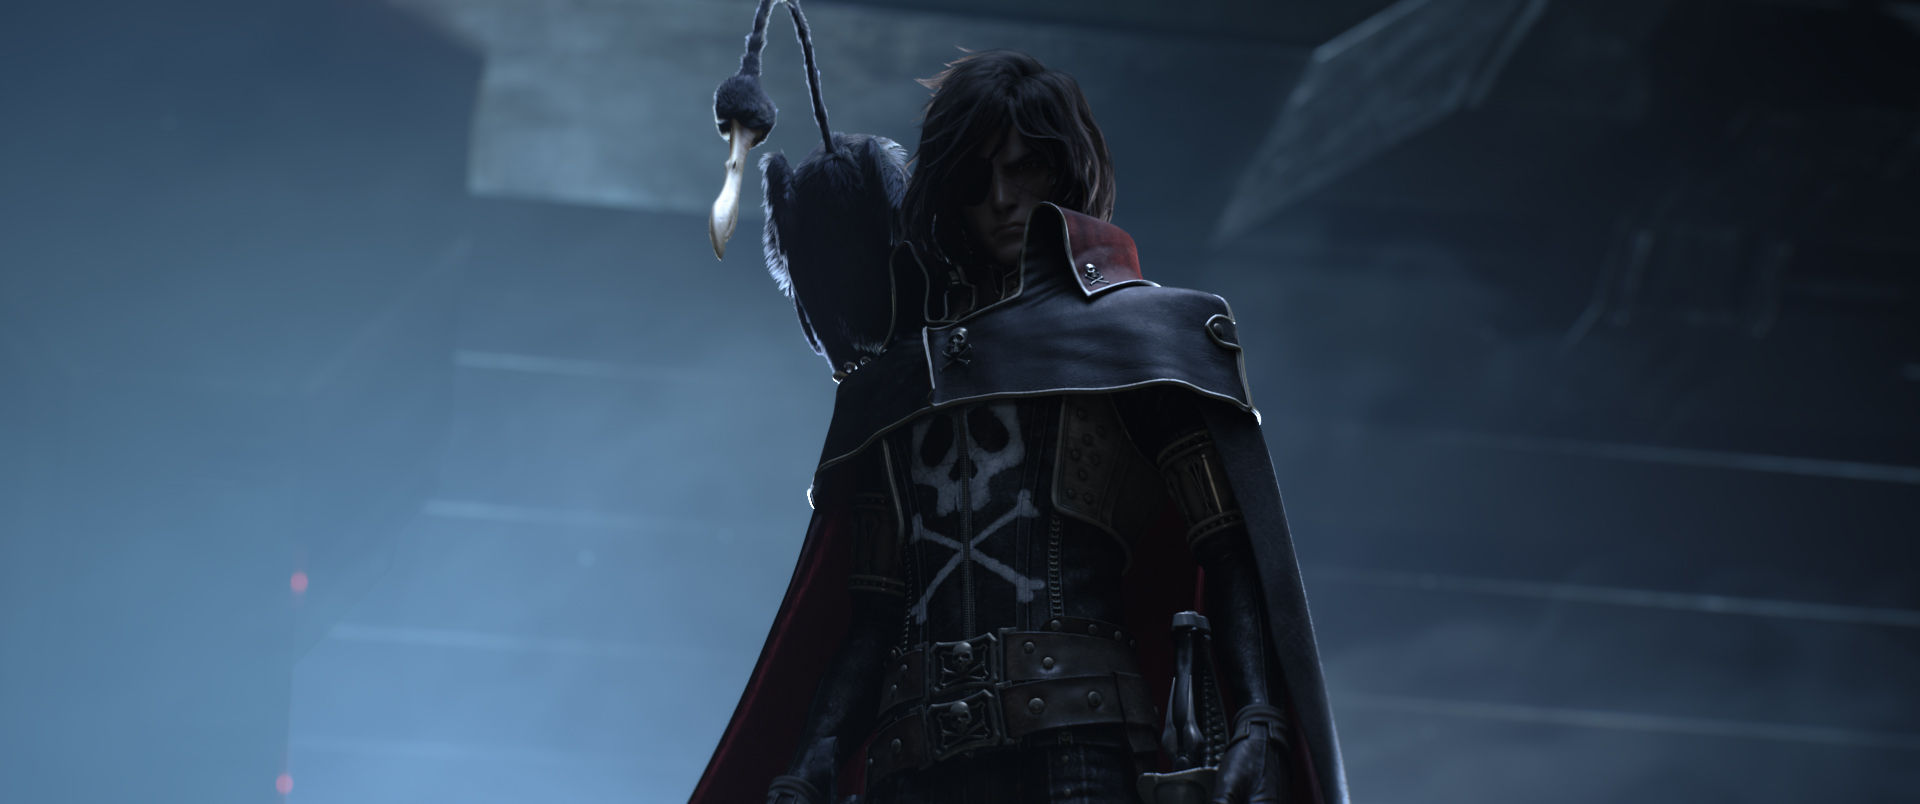 Space_Pirate_Captain_Harlock_Szenenbilder_09.72dpi